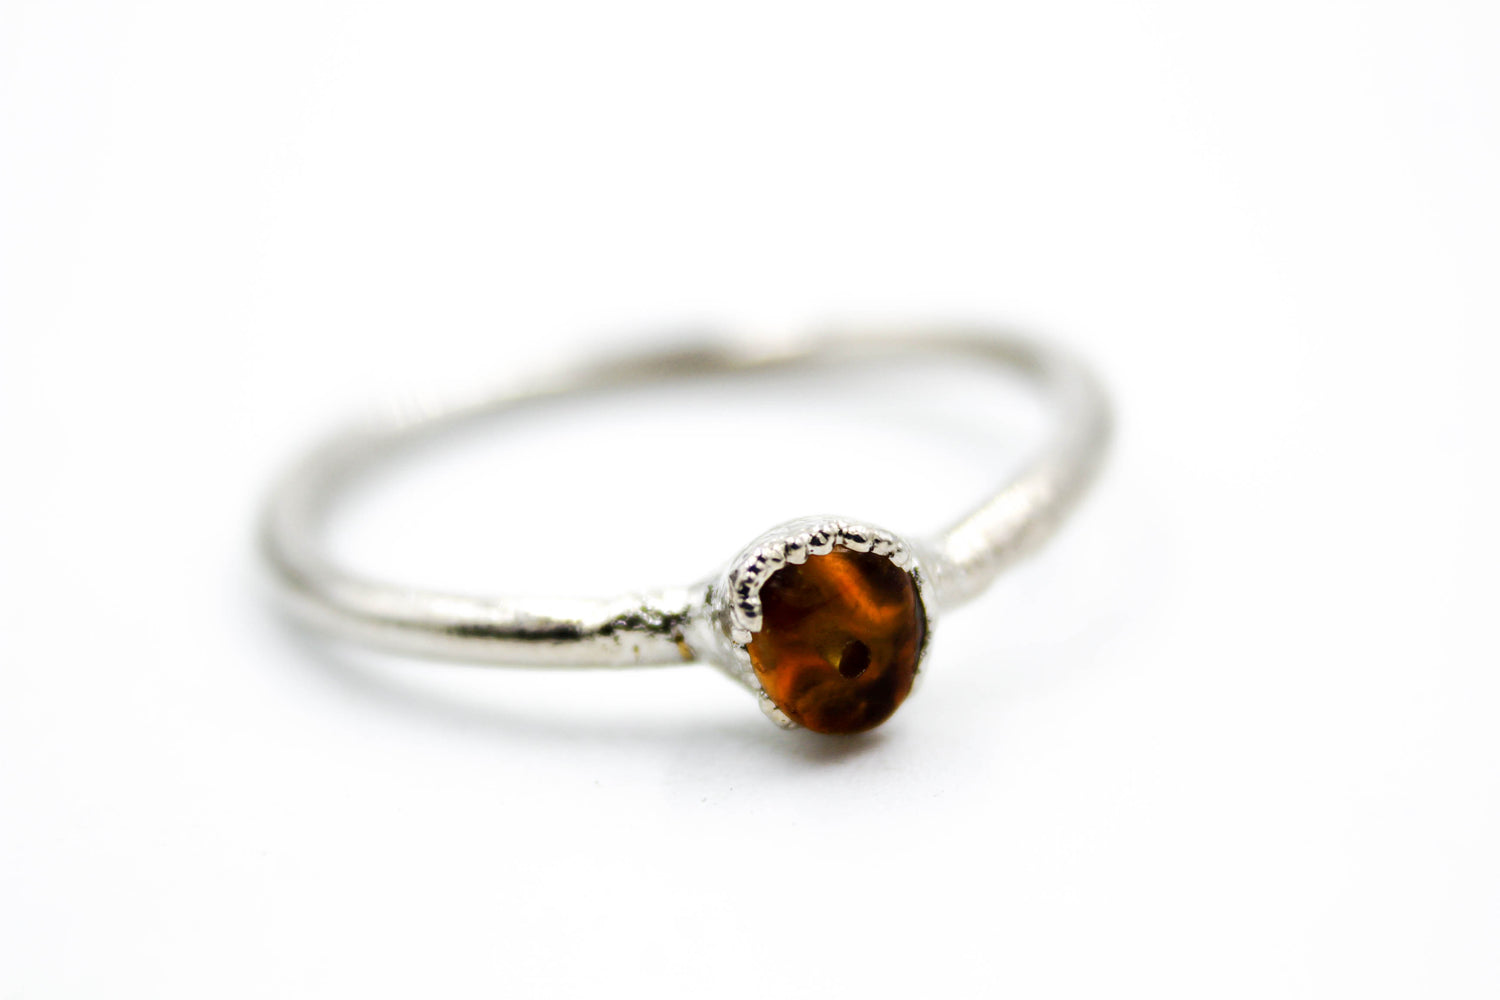 Rough Gemstone Stacking Rings - Copper Based-The Fox And Stone